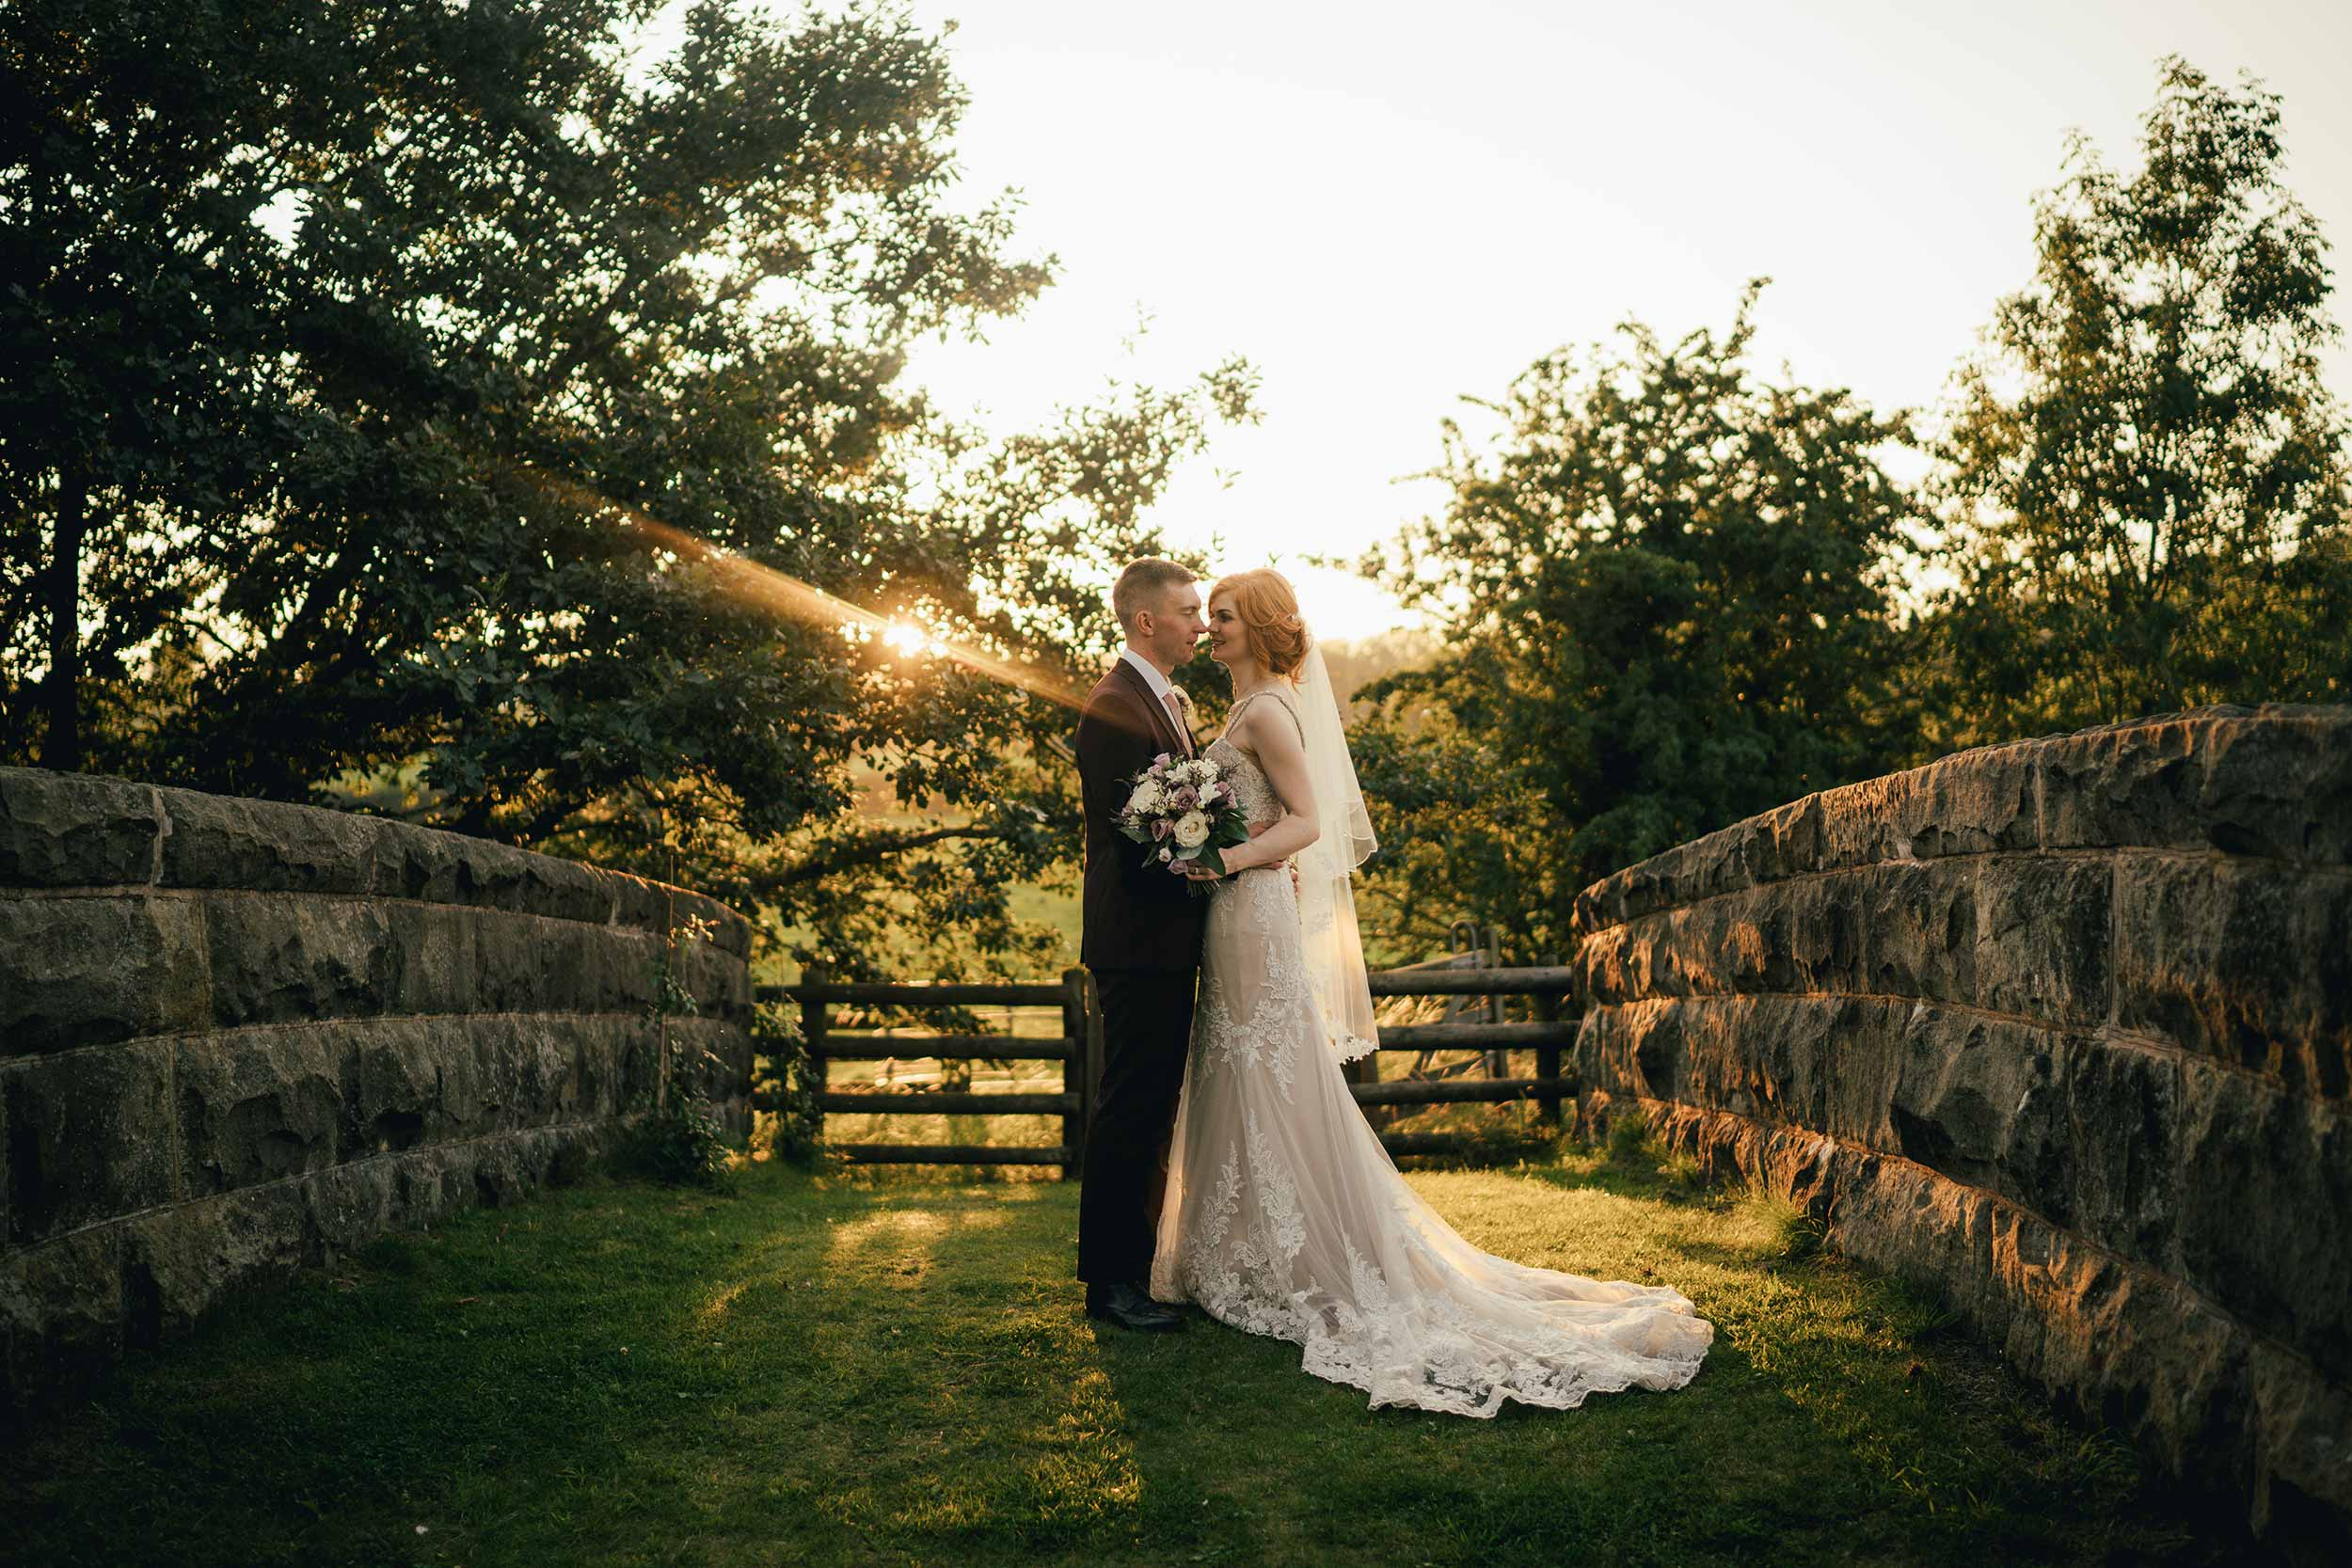 bride and groom in the countryside atop the Railway Bridge - Tower Hill Barns; North Wales - during golden hour; Lucy G Photography